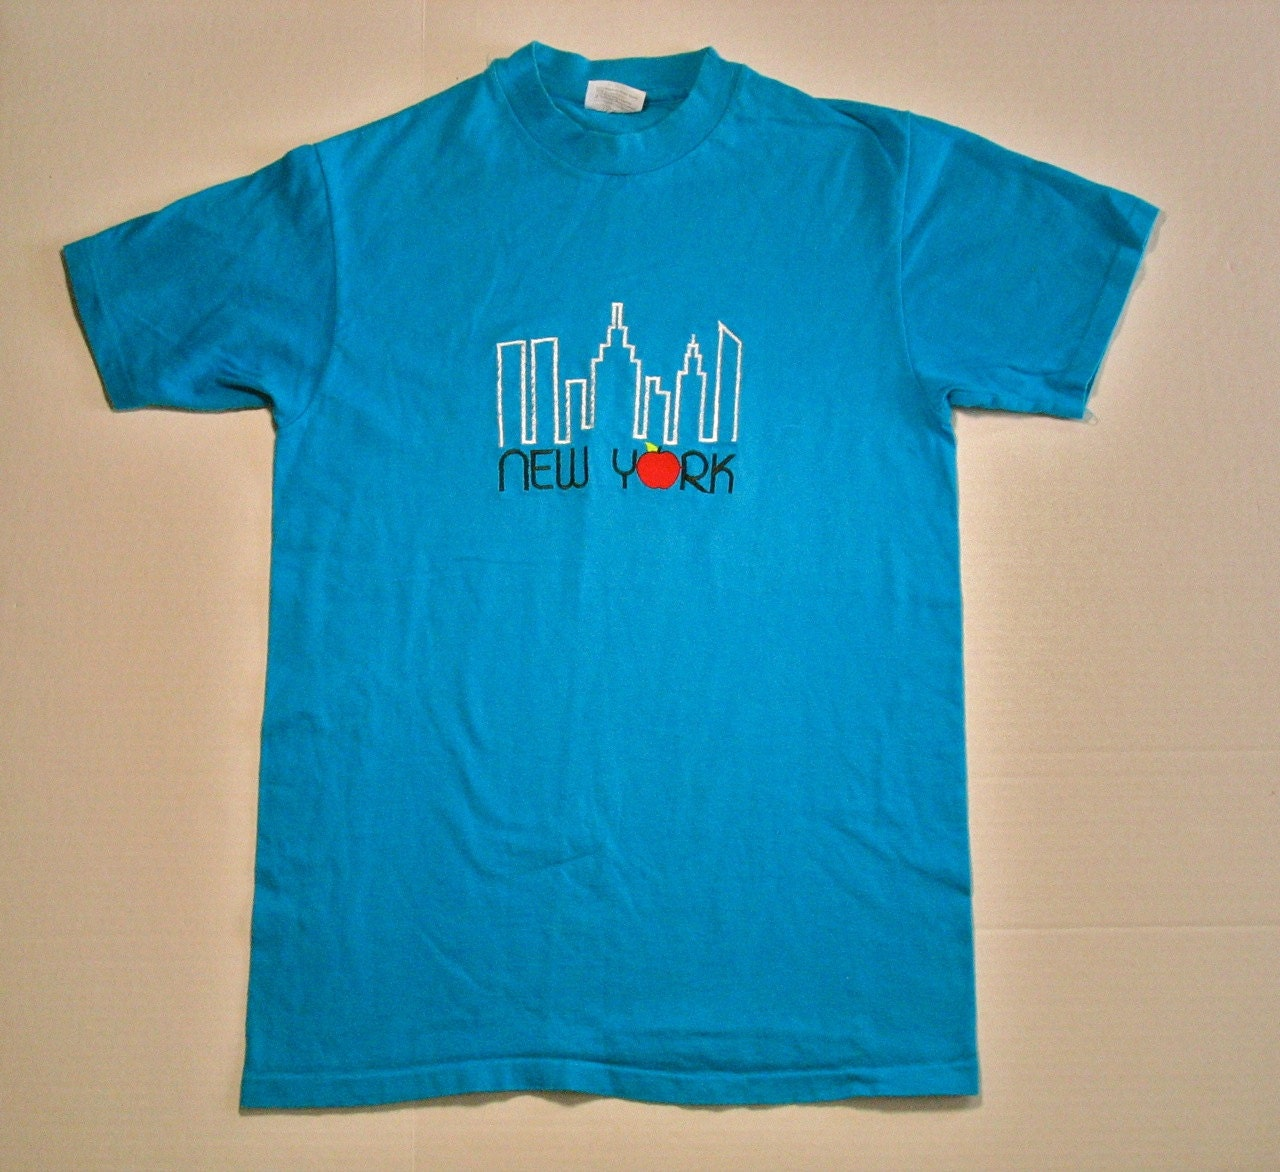 S new york city t shirt embroidered big apple turquoise blue